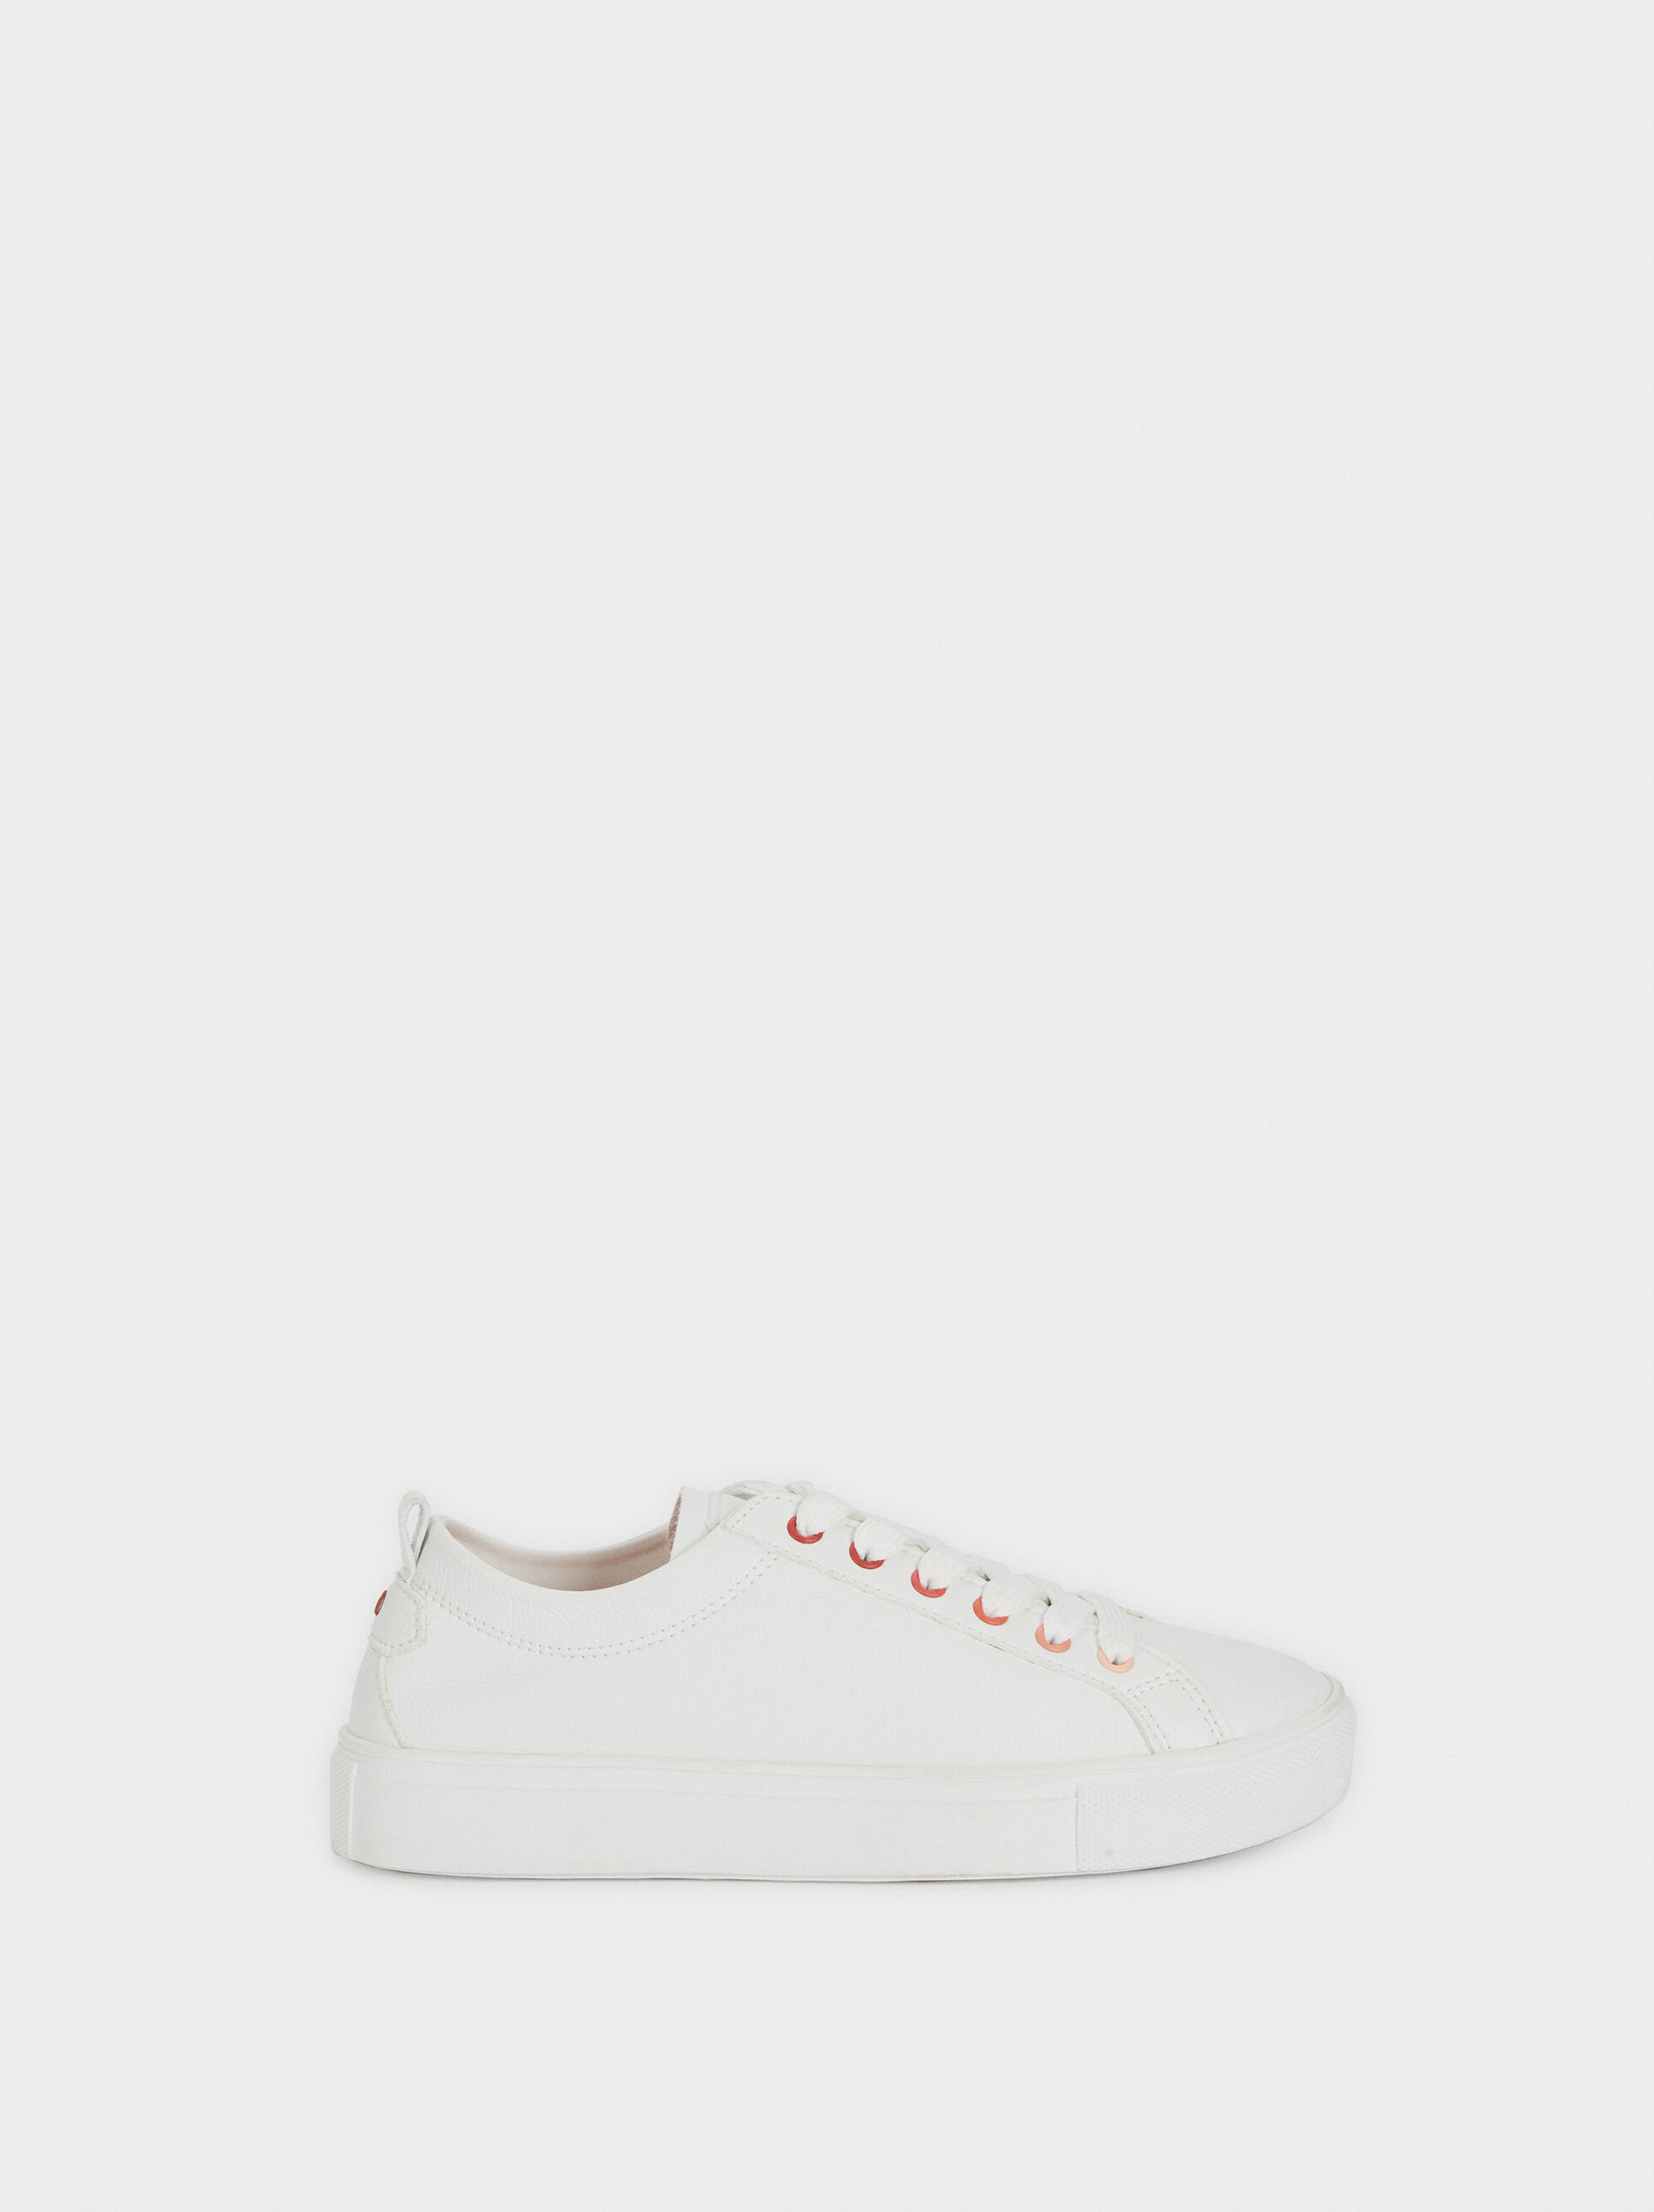 White Trainers, , hi-res